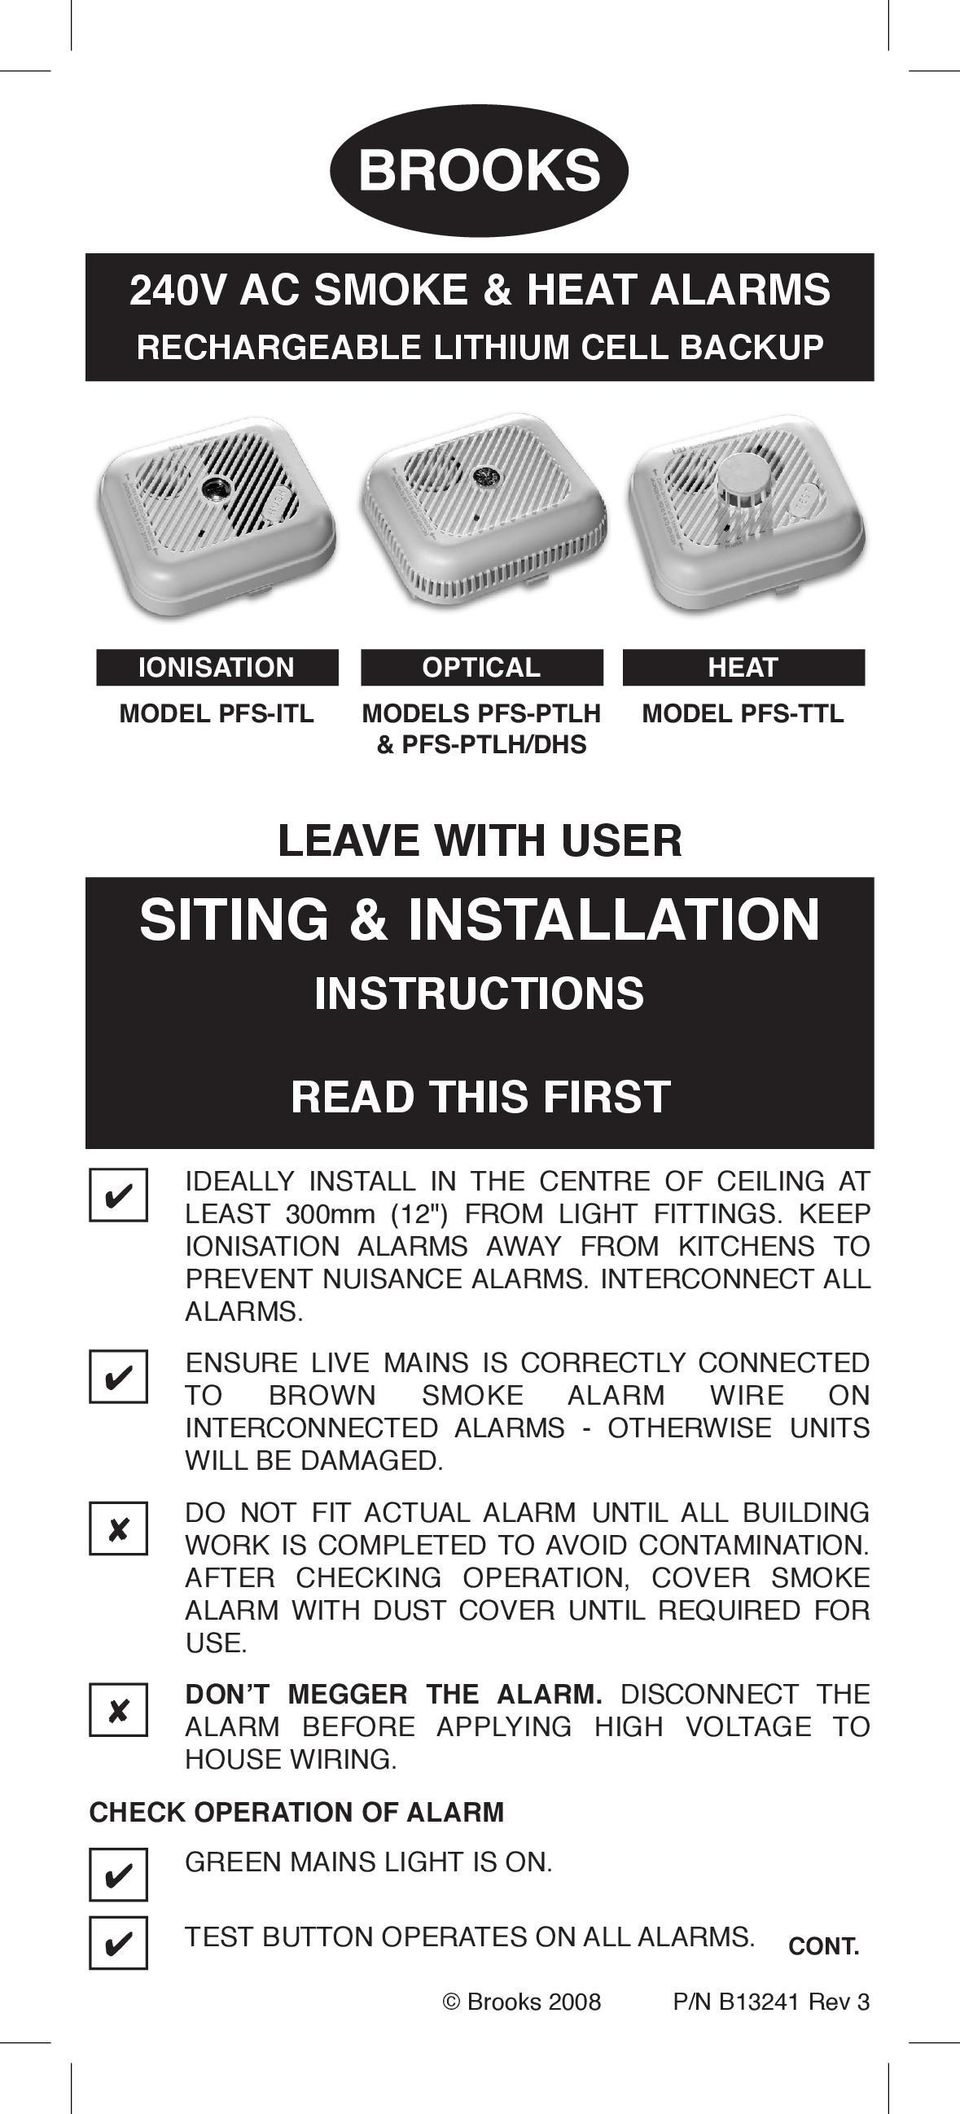 Read This First Cont Pdf House Wiring Smoke Alarms Ensure Live Mains Is Correctly Connected To Brown Alarm Wire On Interconnected Otherwise